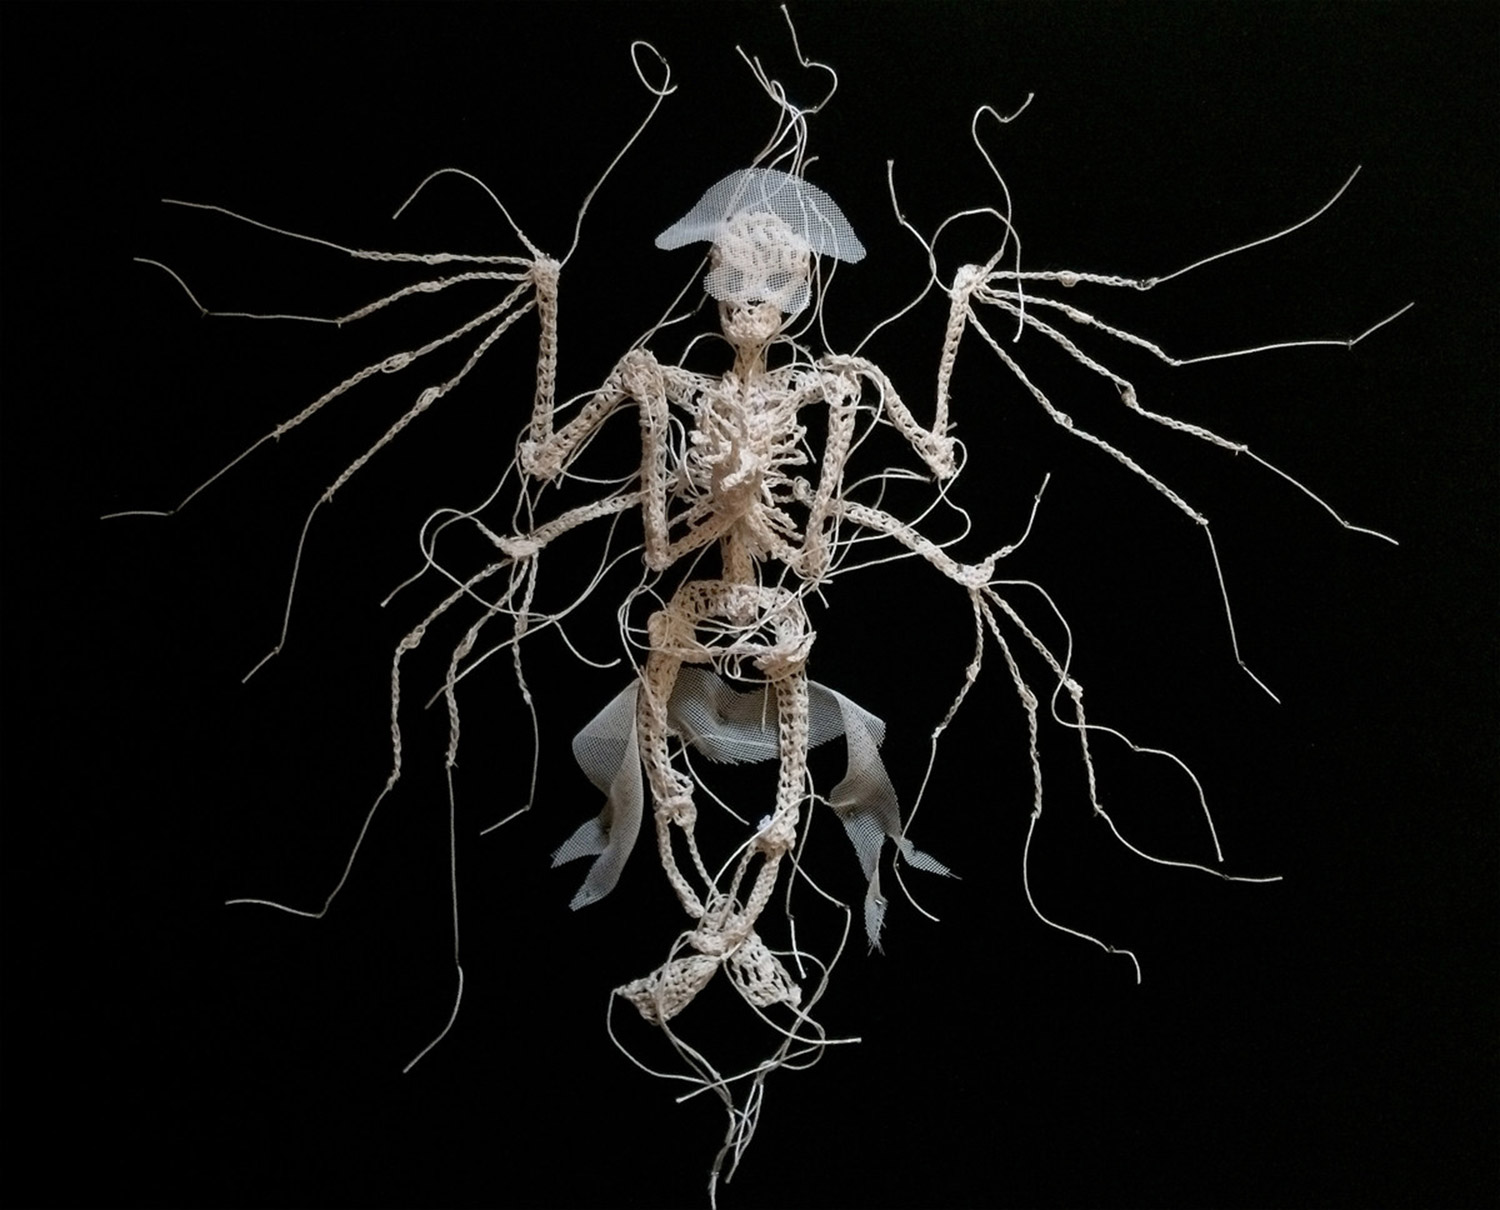 Caitlin McCormack - crocheted winged skeleton